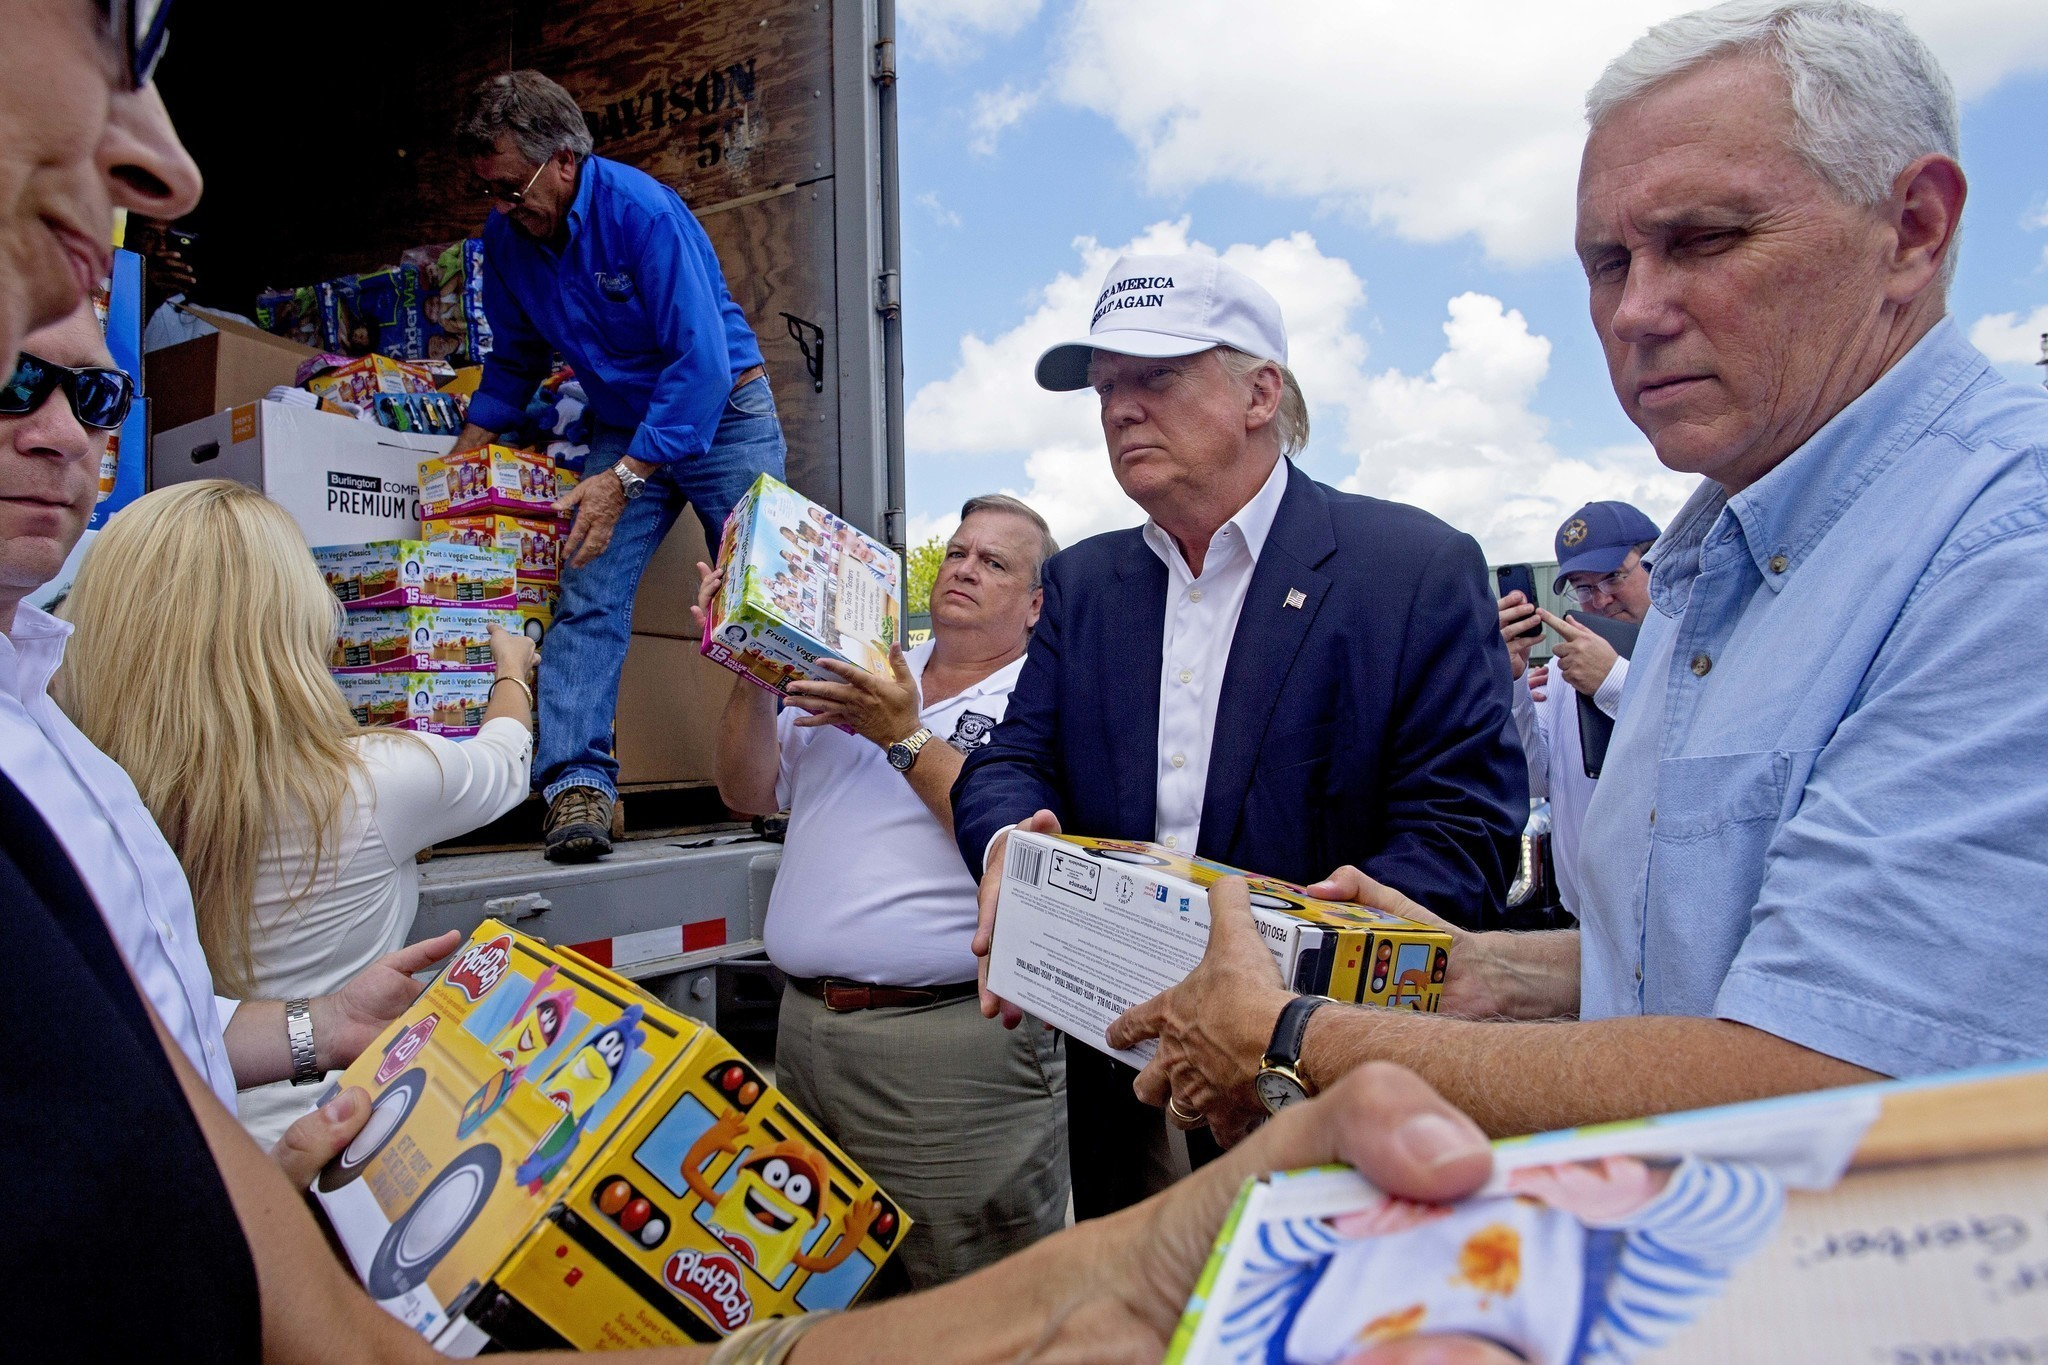 Louisiana Flood Victims Praise Donald Trump For Visiting